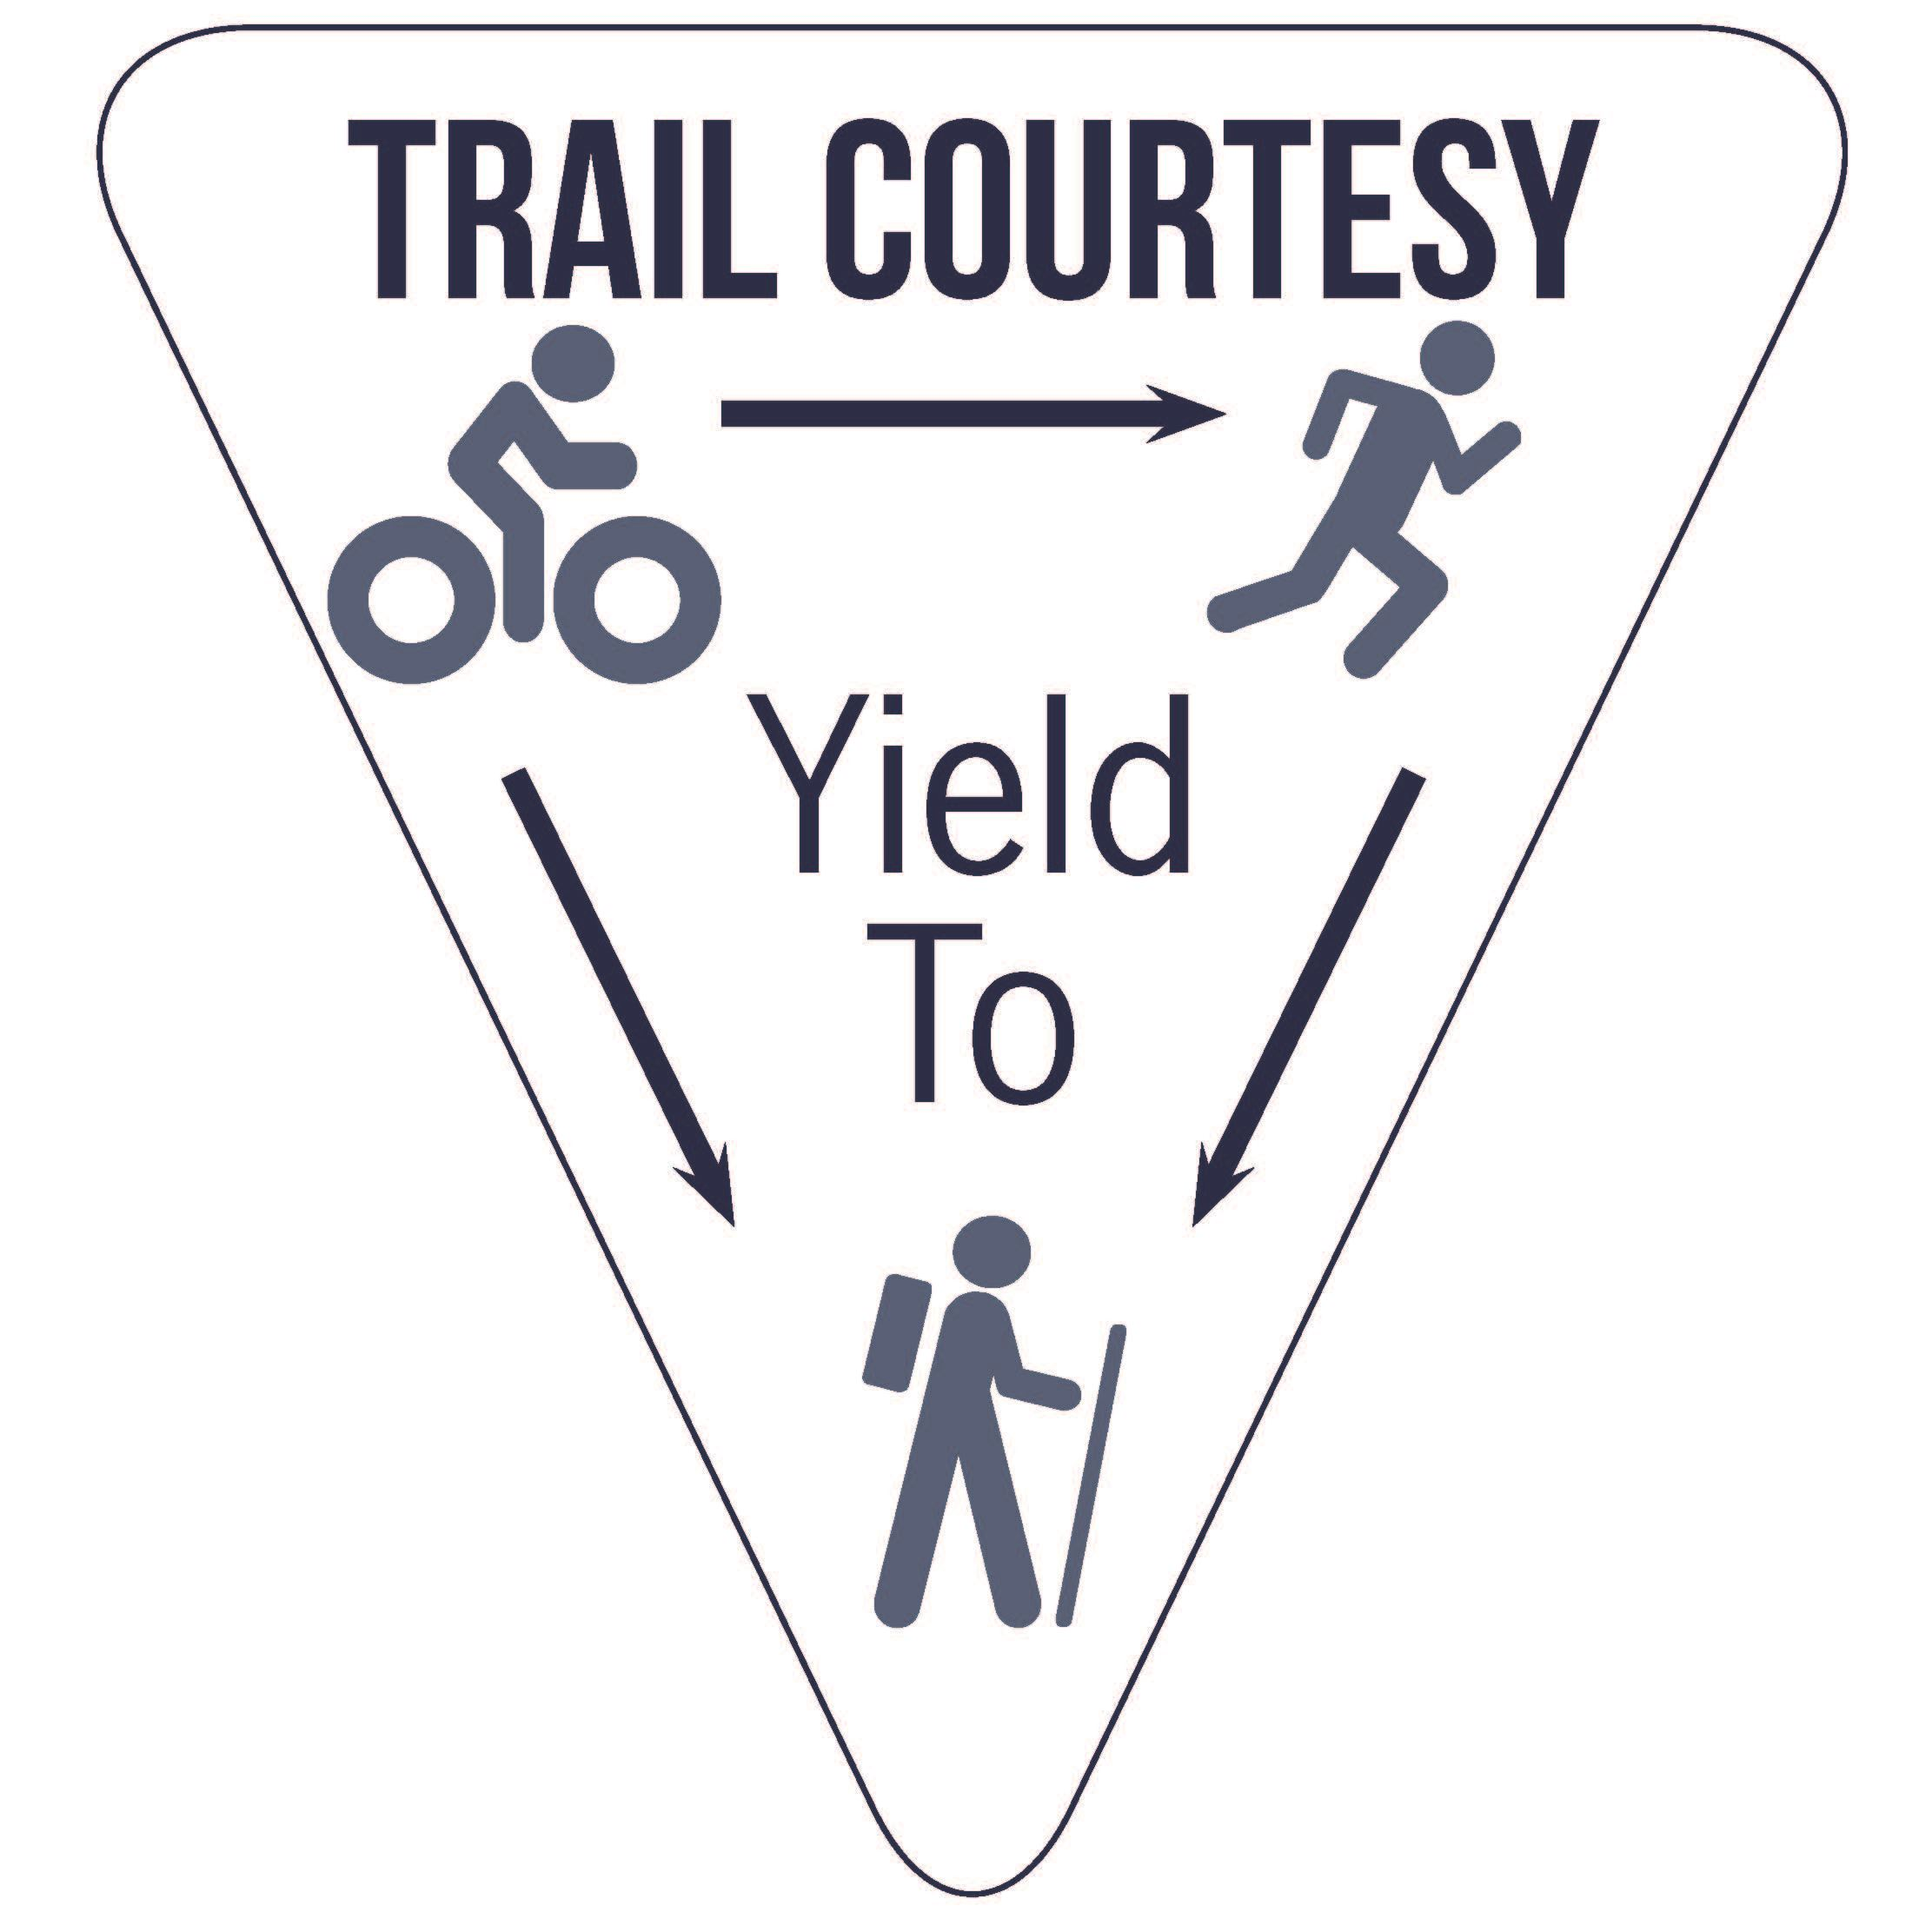 TrailCourtesySign_RockArt